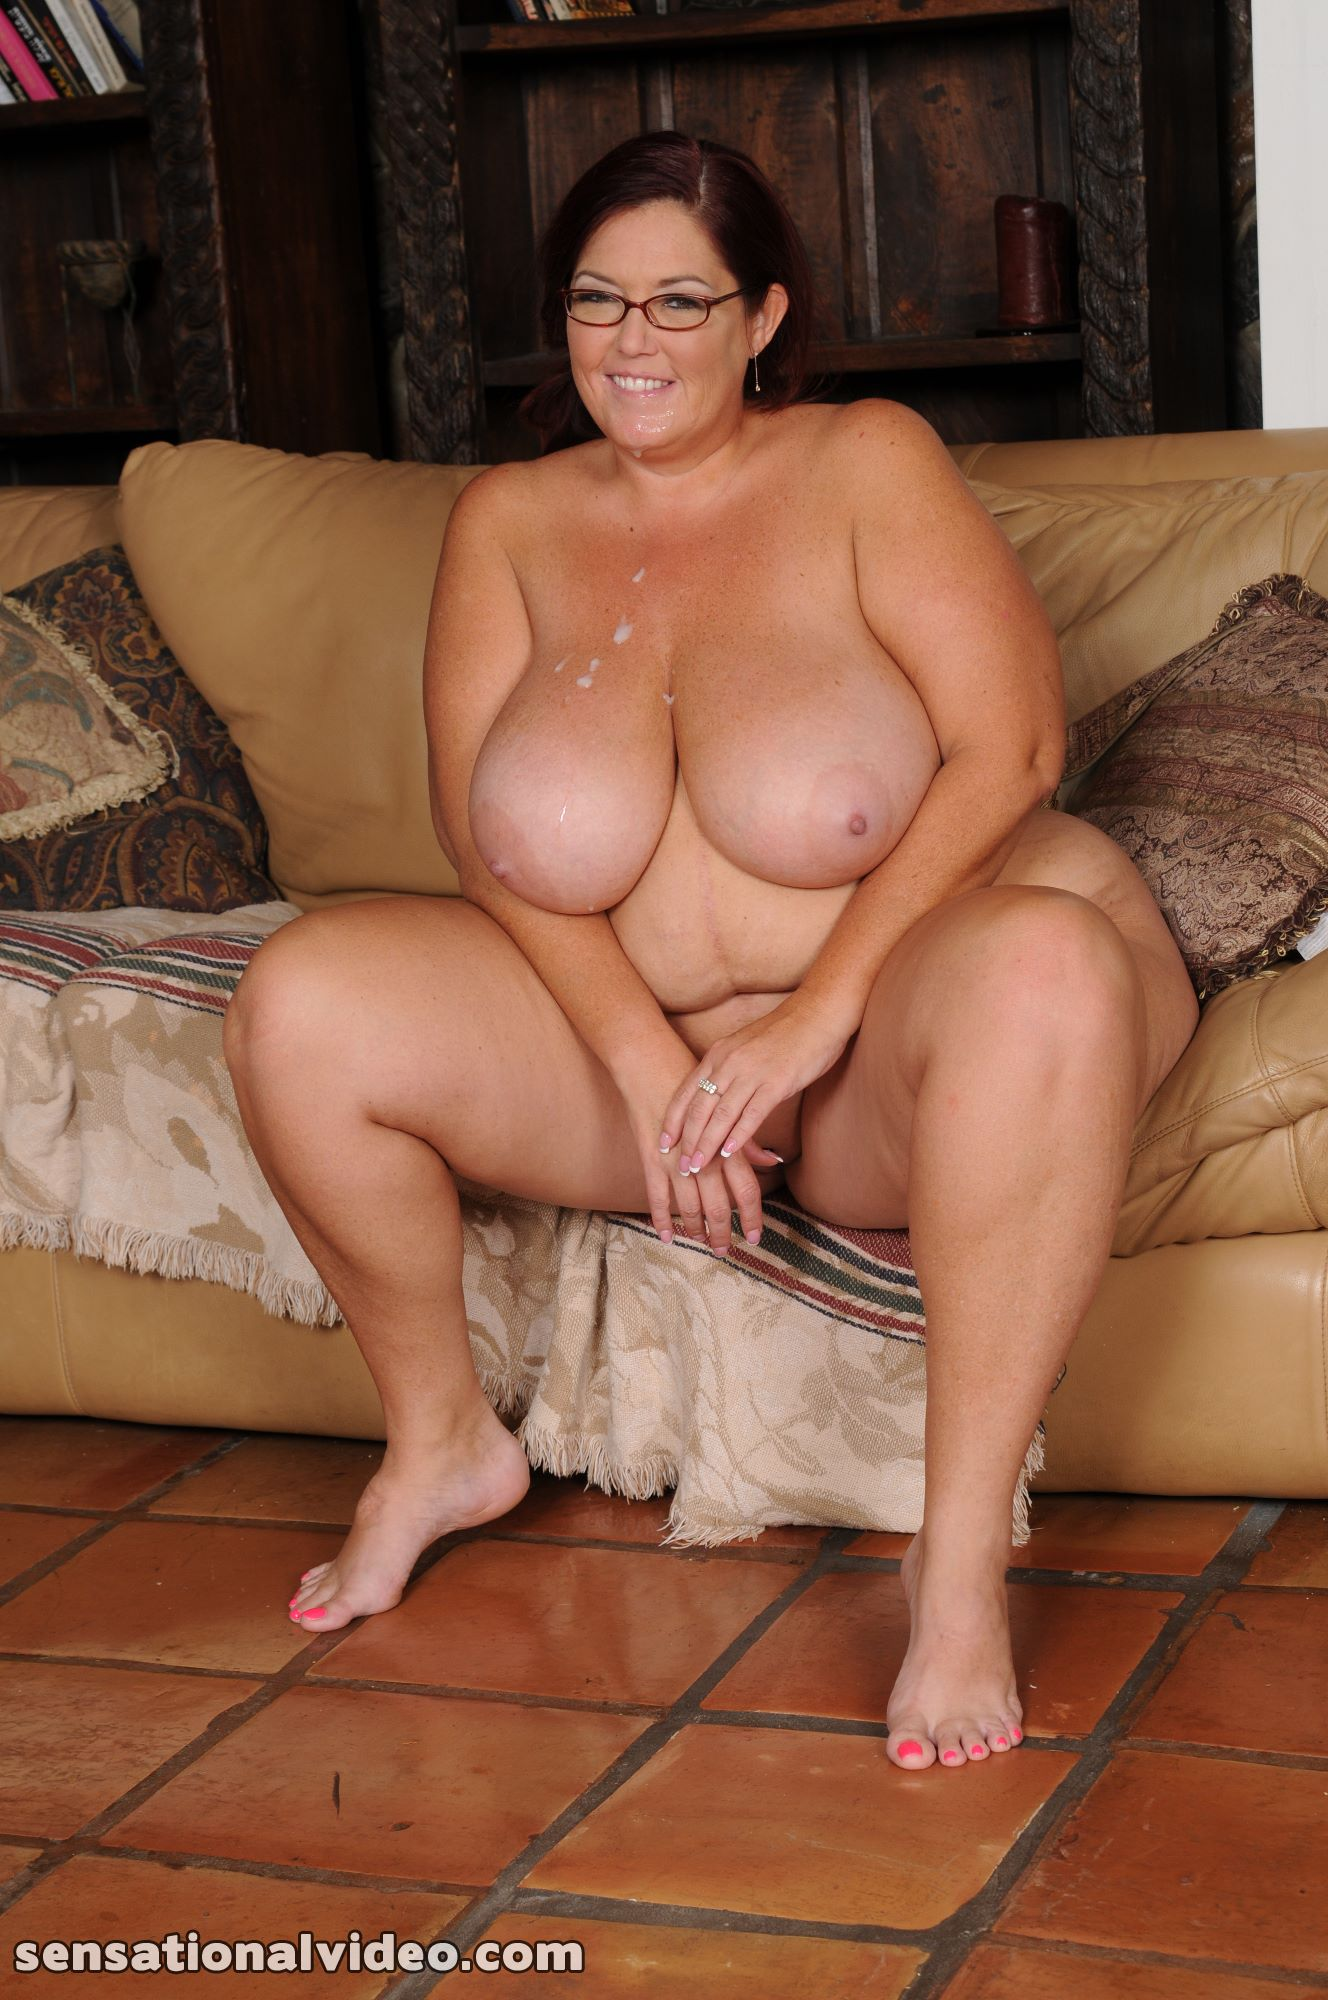 lesgalls spicytitties plumperpass gal553 pic 16